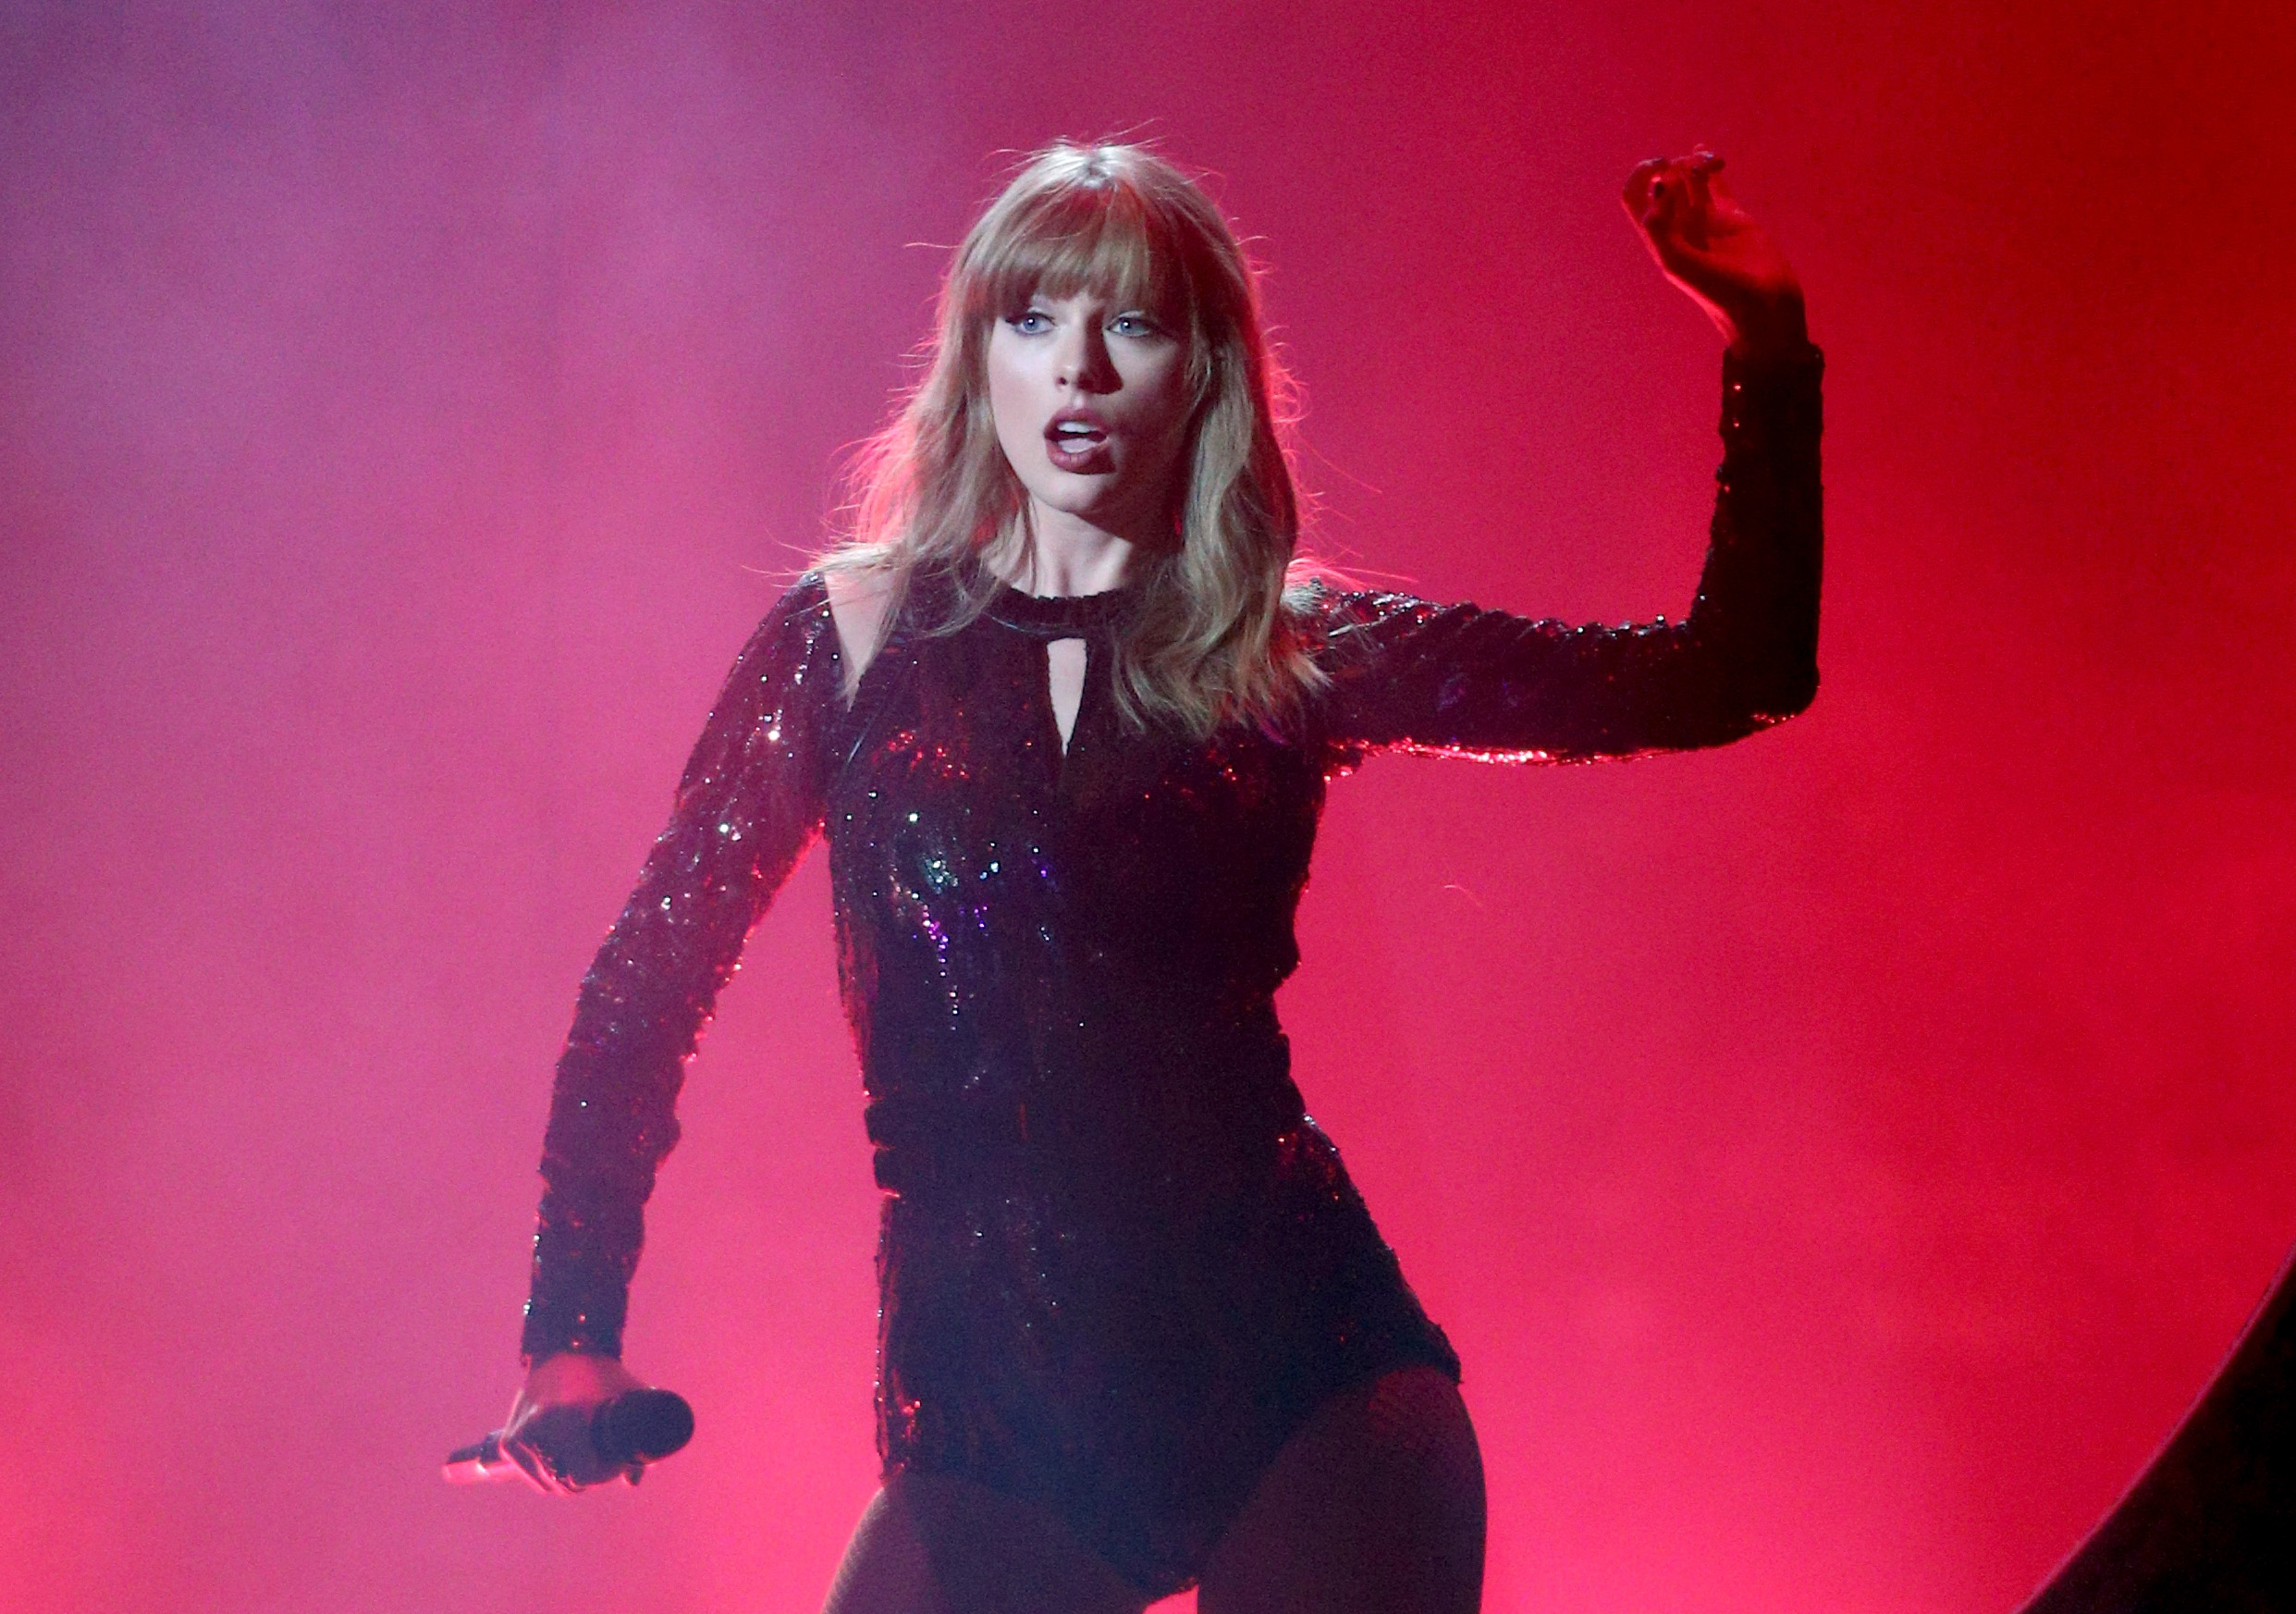 Taylor Swift live in concert